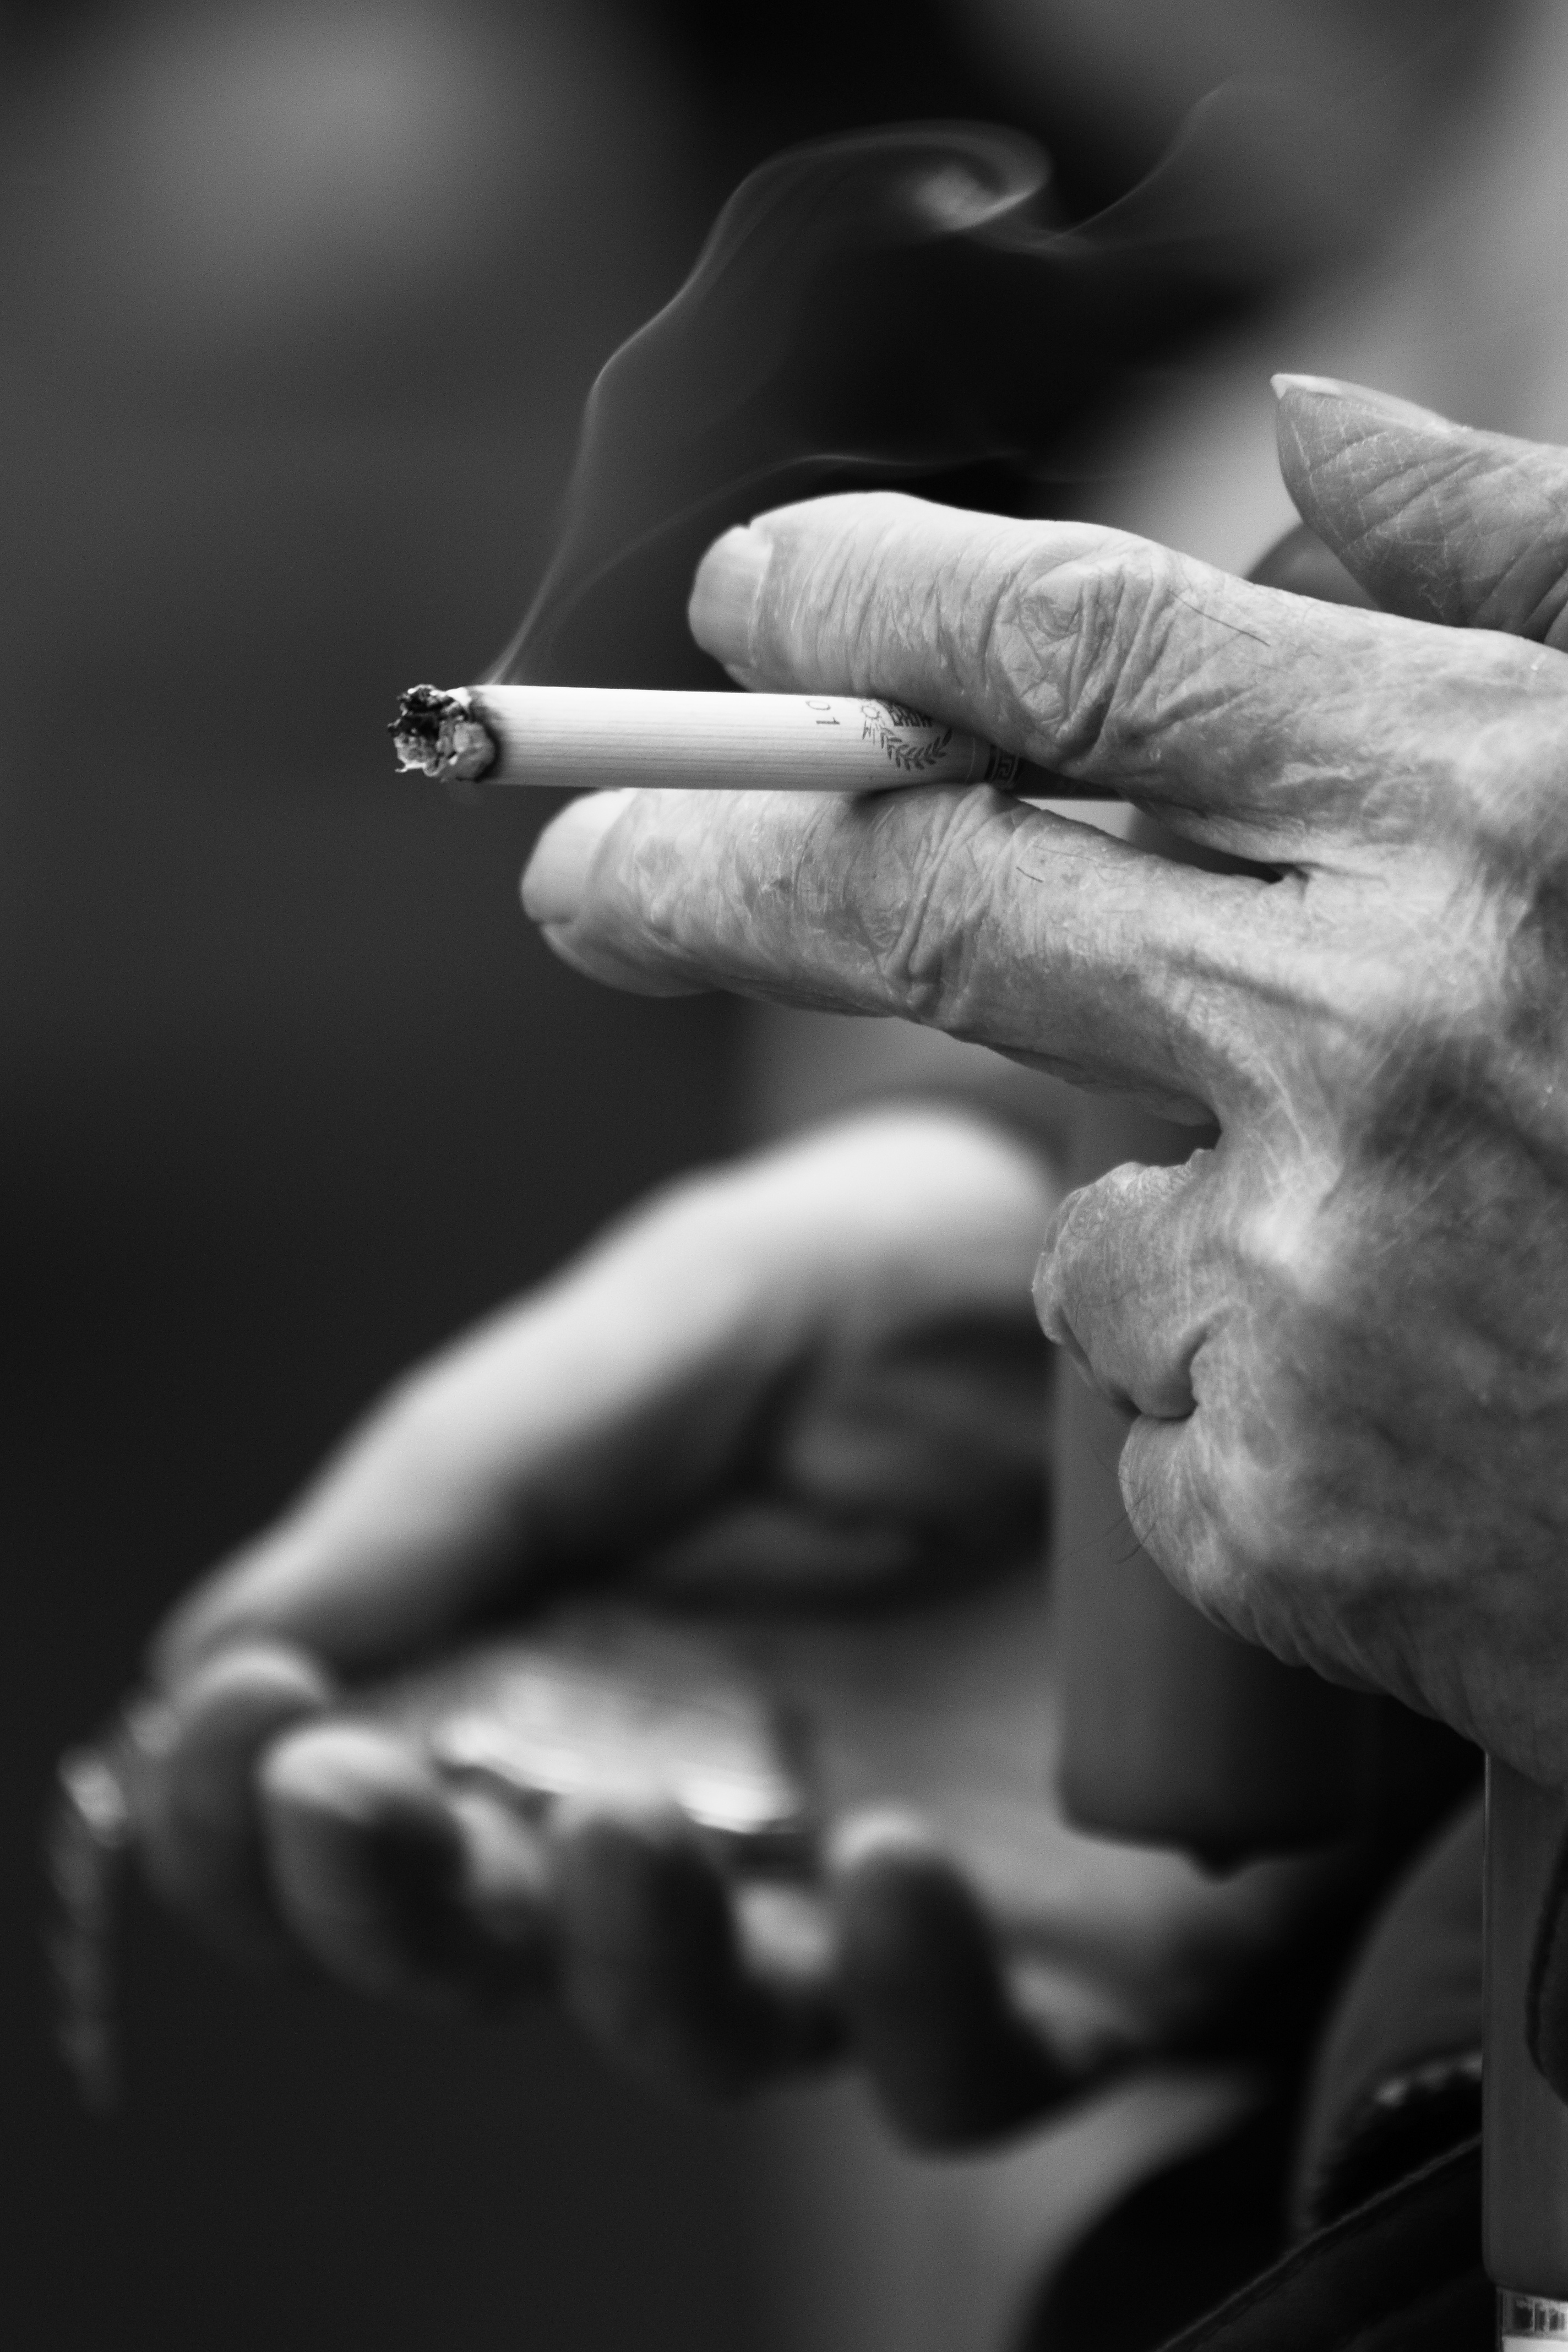 watch and cigarette